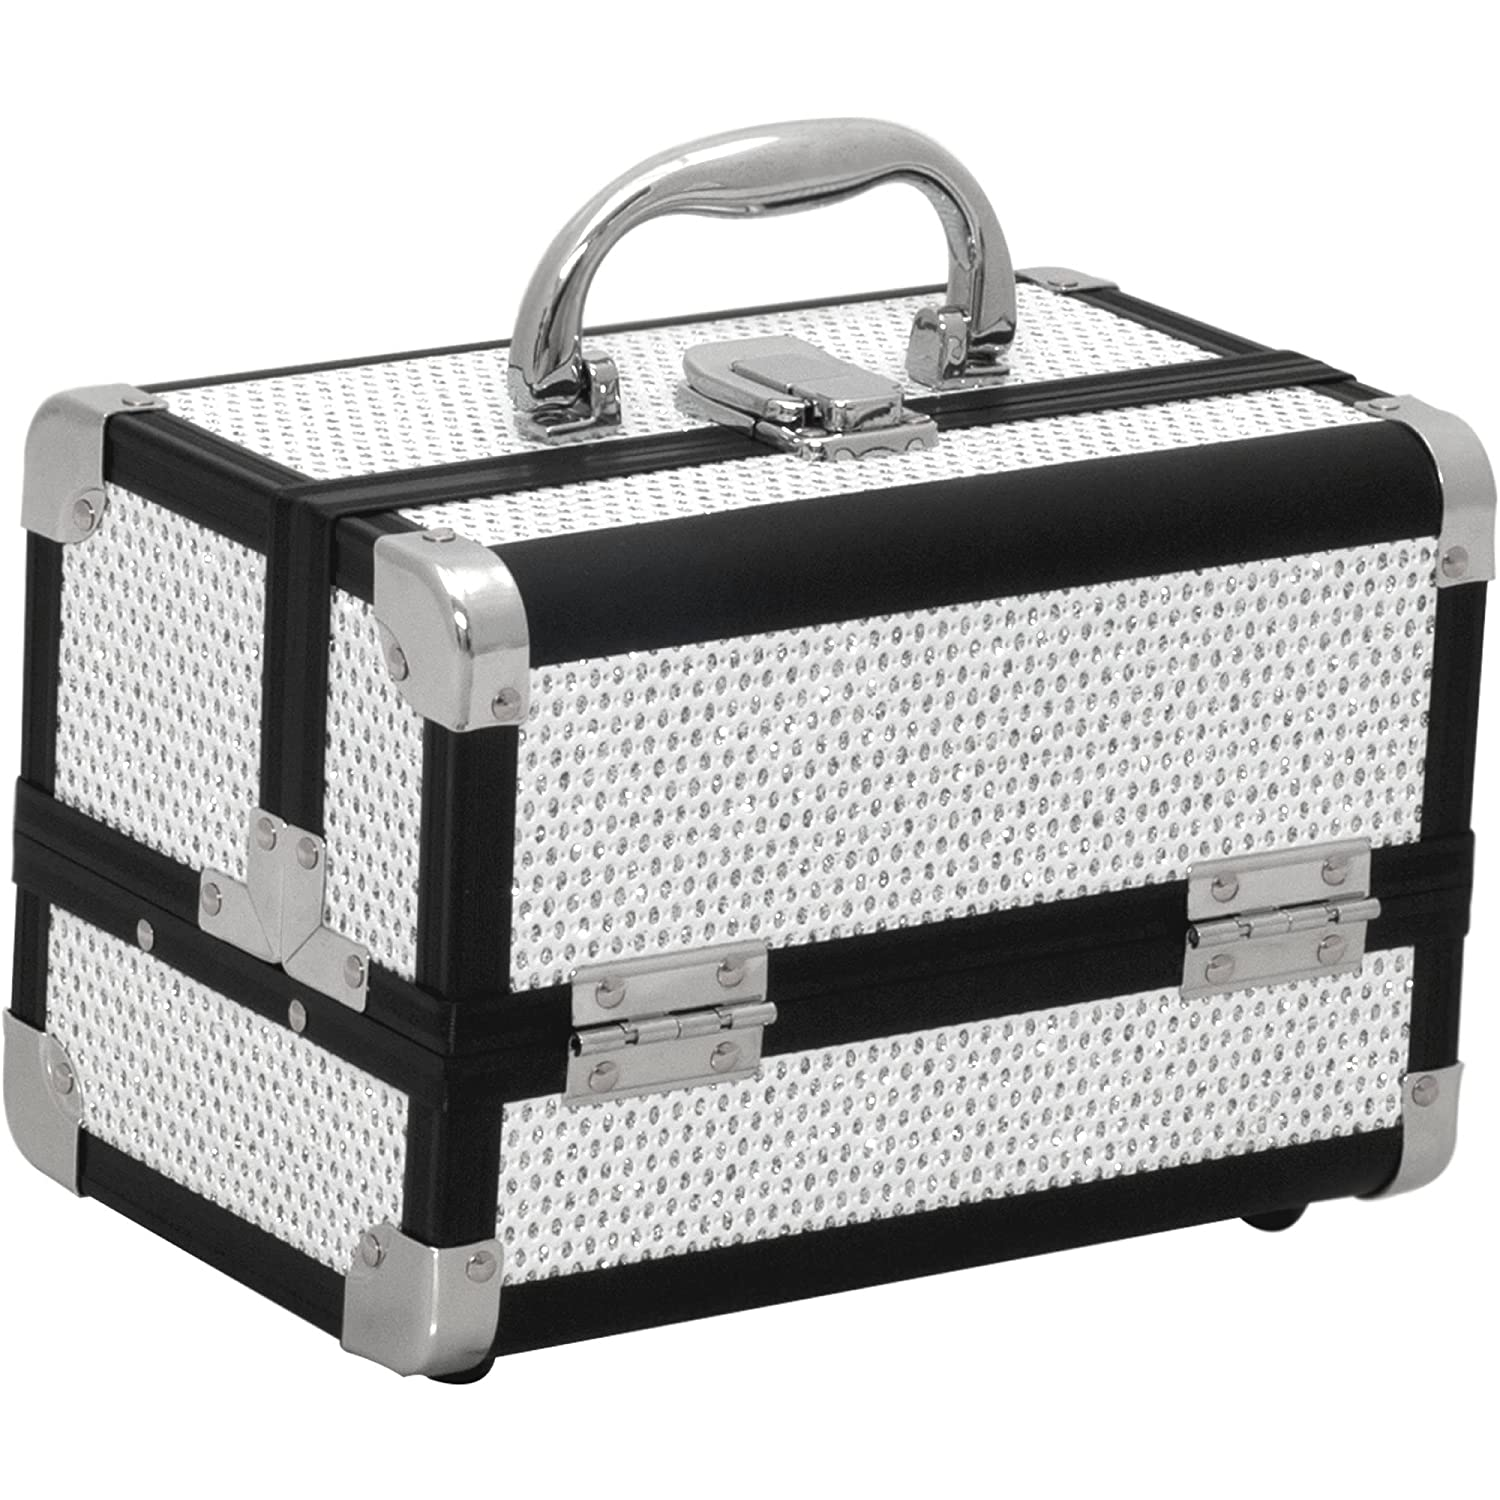 Just Case m1001 Mini Makeup Cosmetic Train Case Organizer Storage Easy Clean with 2 Trays and Mirror Krystal White M1001KLWB